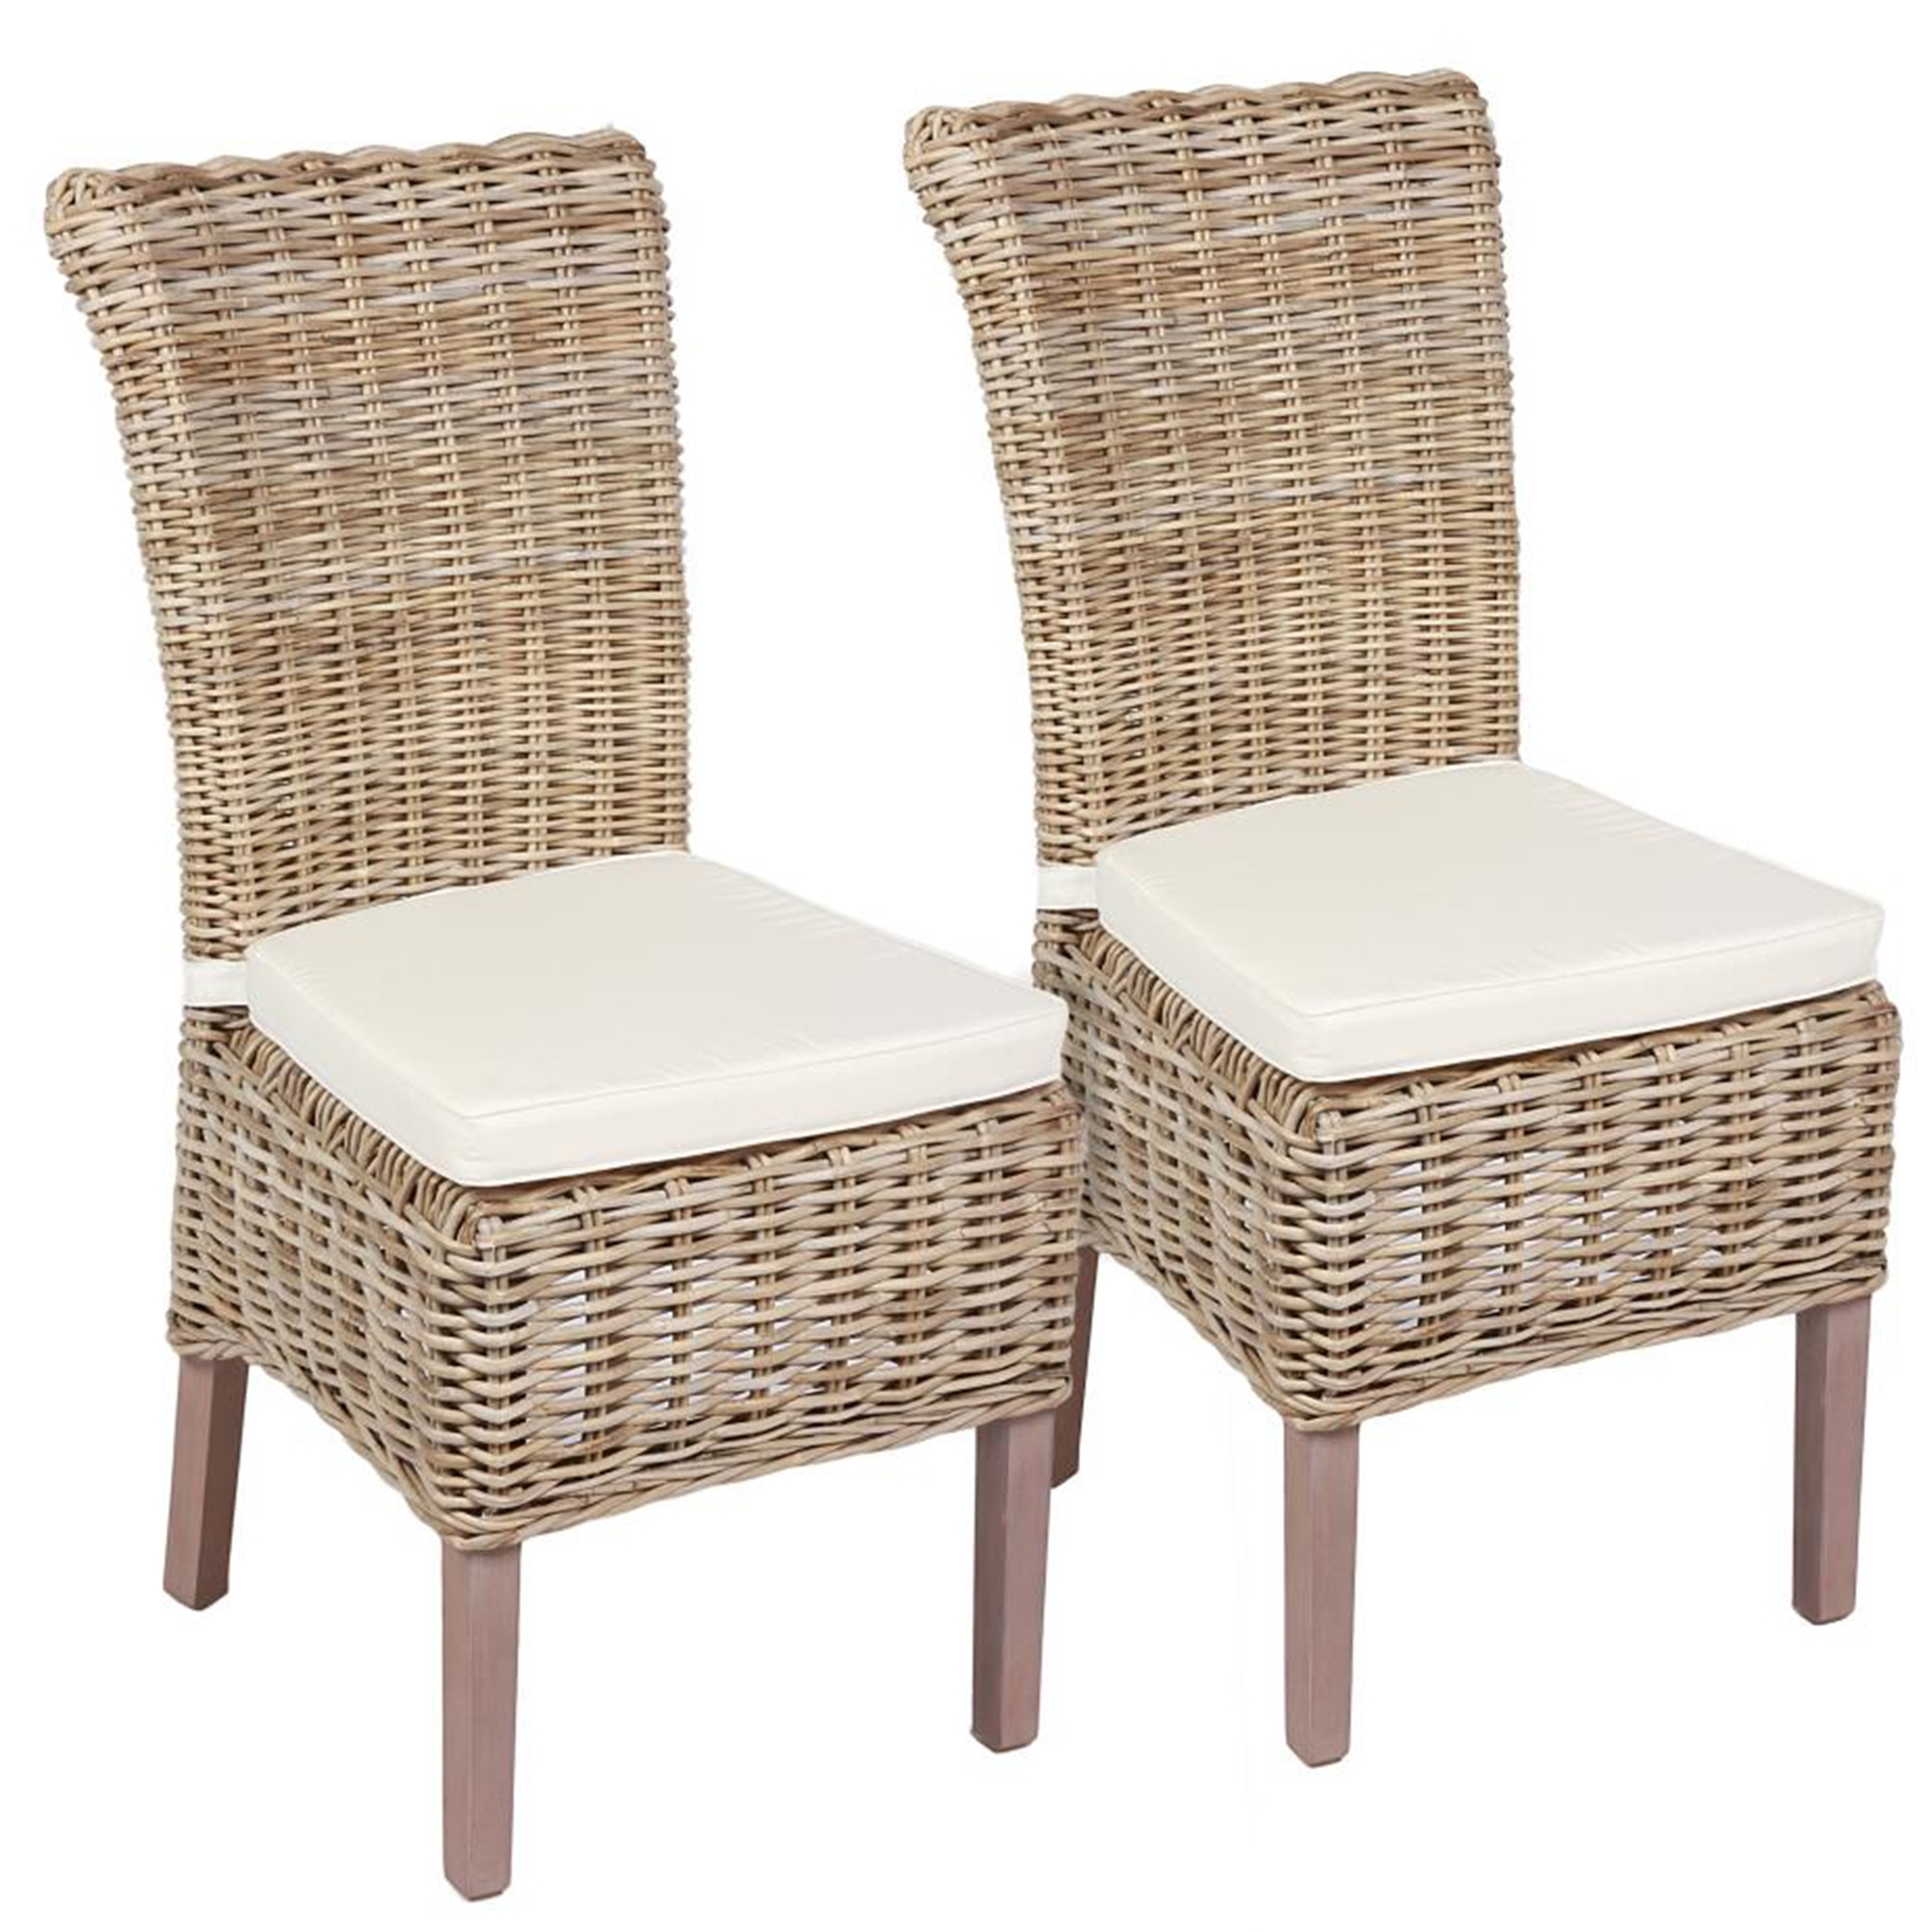 Kooboo Wicker Chair: French Furniture From Homesdirect